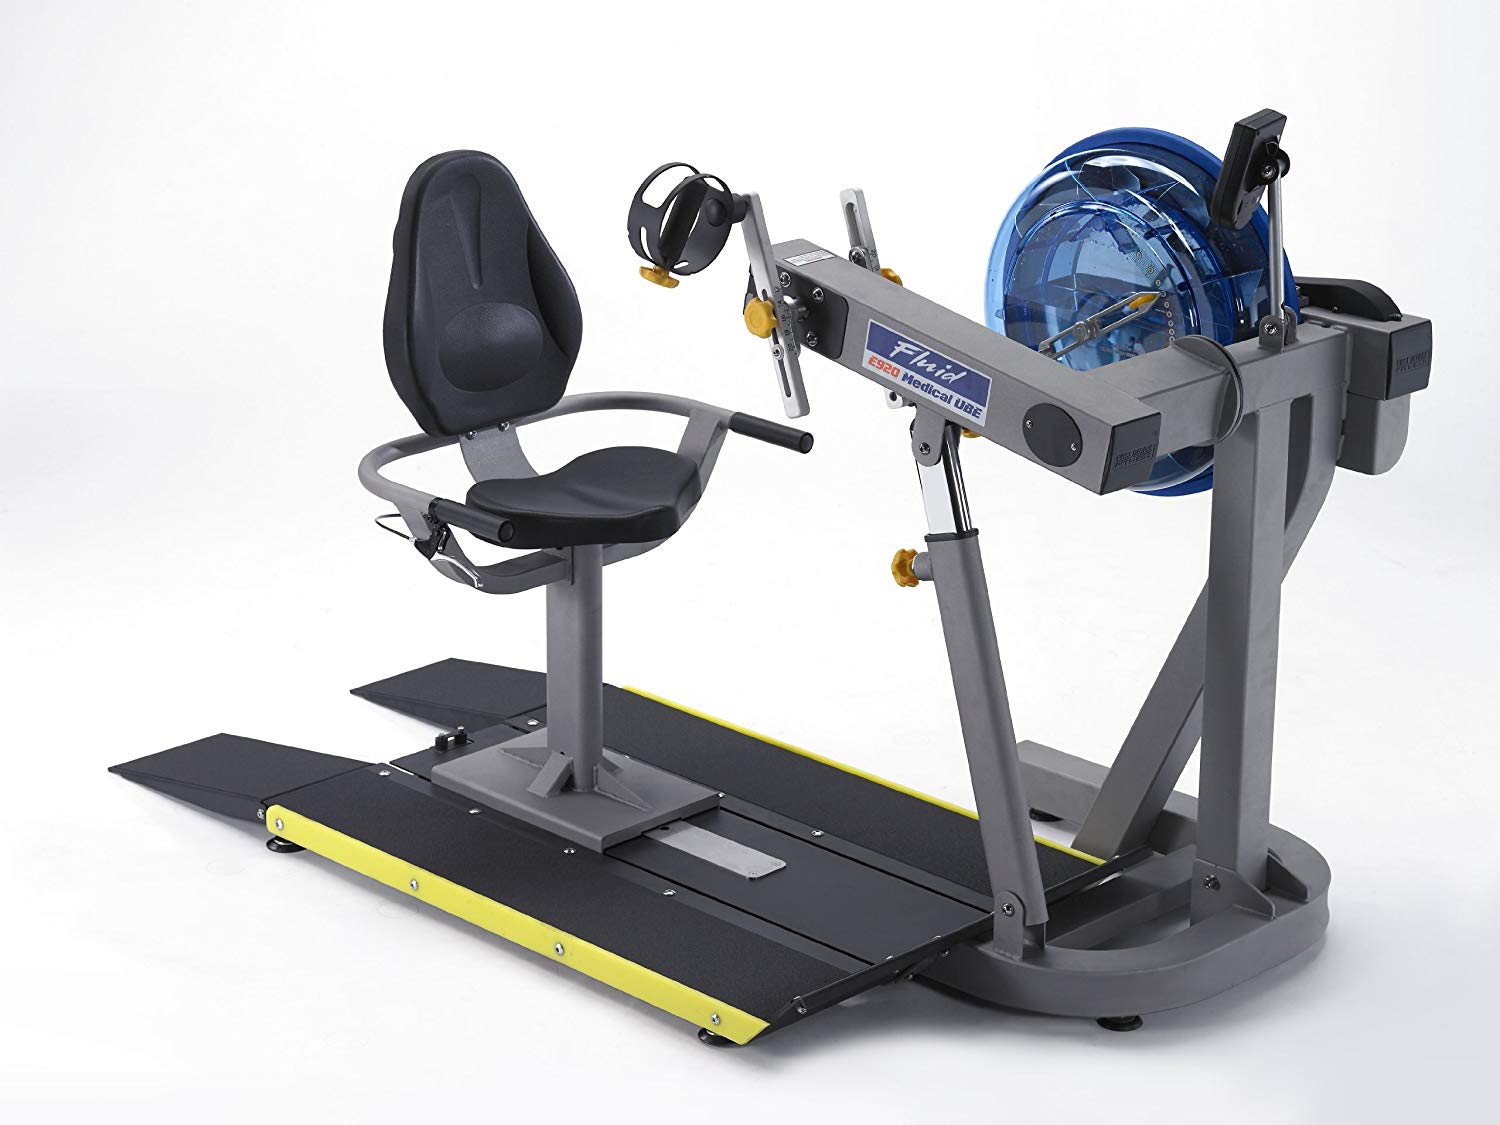 New 2020 First Degree Fitness Evolution Series E-920 Fluid Upper Body Ergometer w/ Adjustable Crank Arm